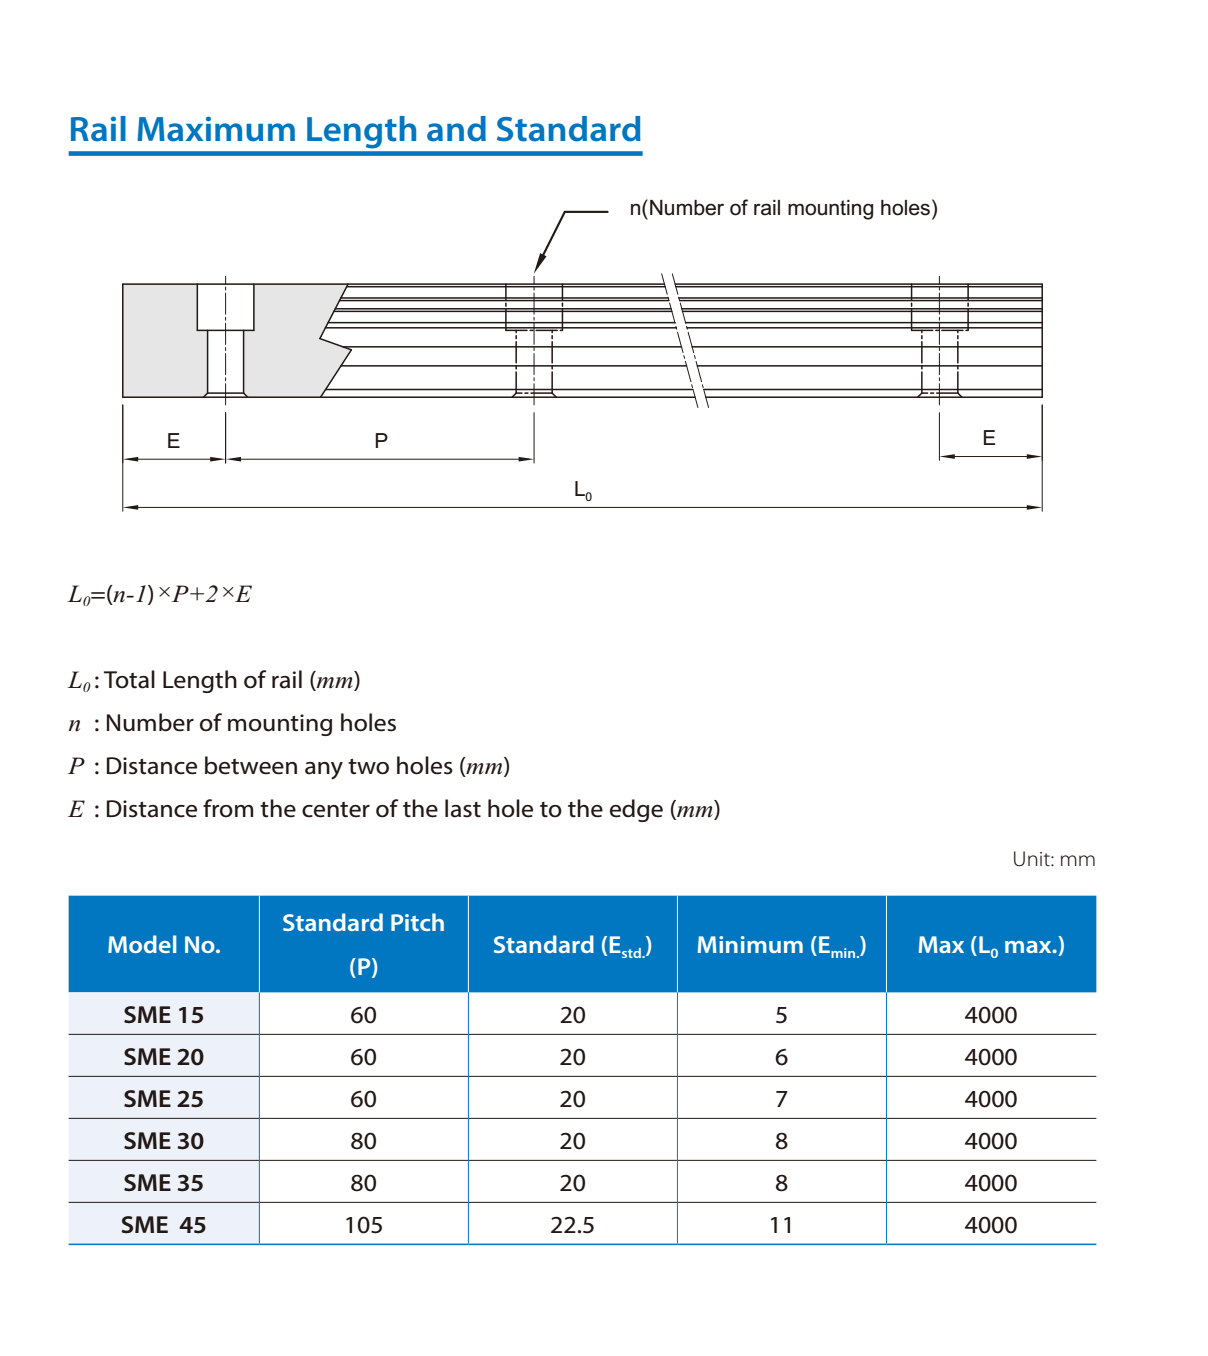 PMI Linear Guide SME Series Ball Chain Type Rail Maximum Length and Standard